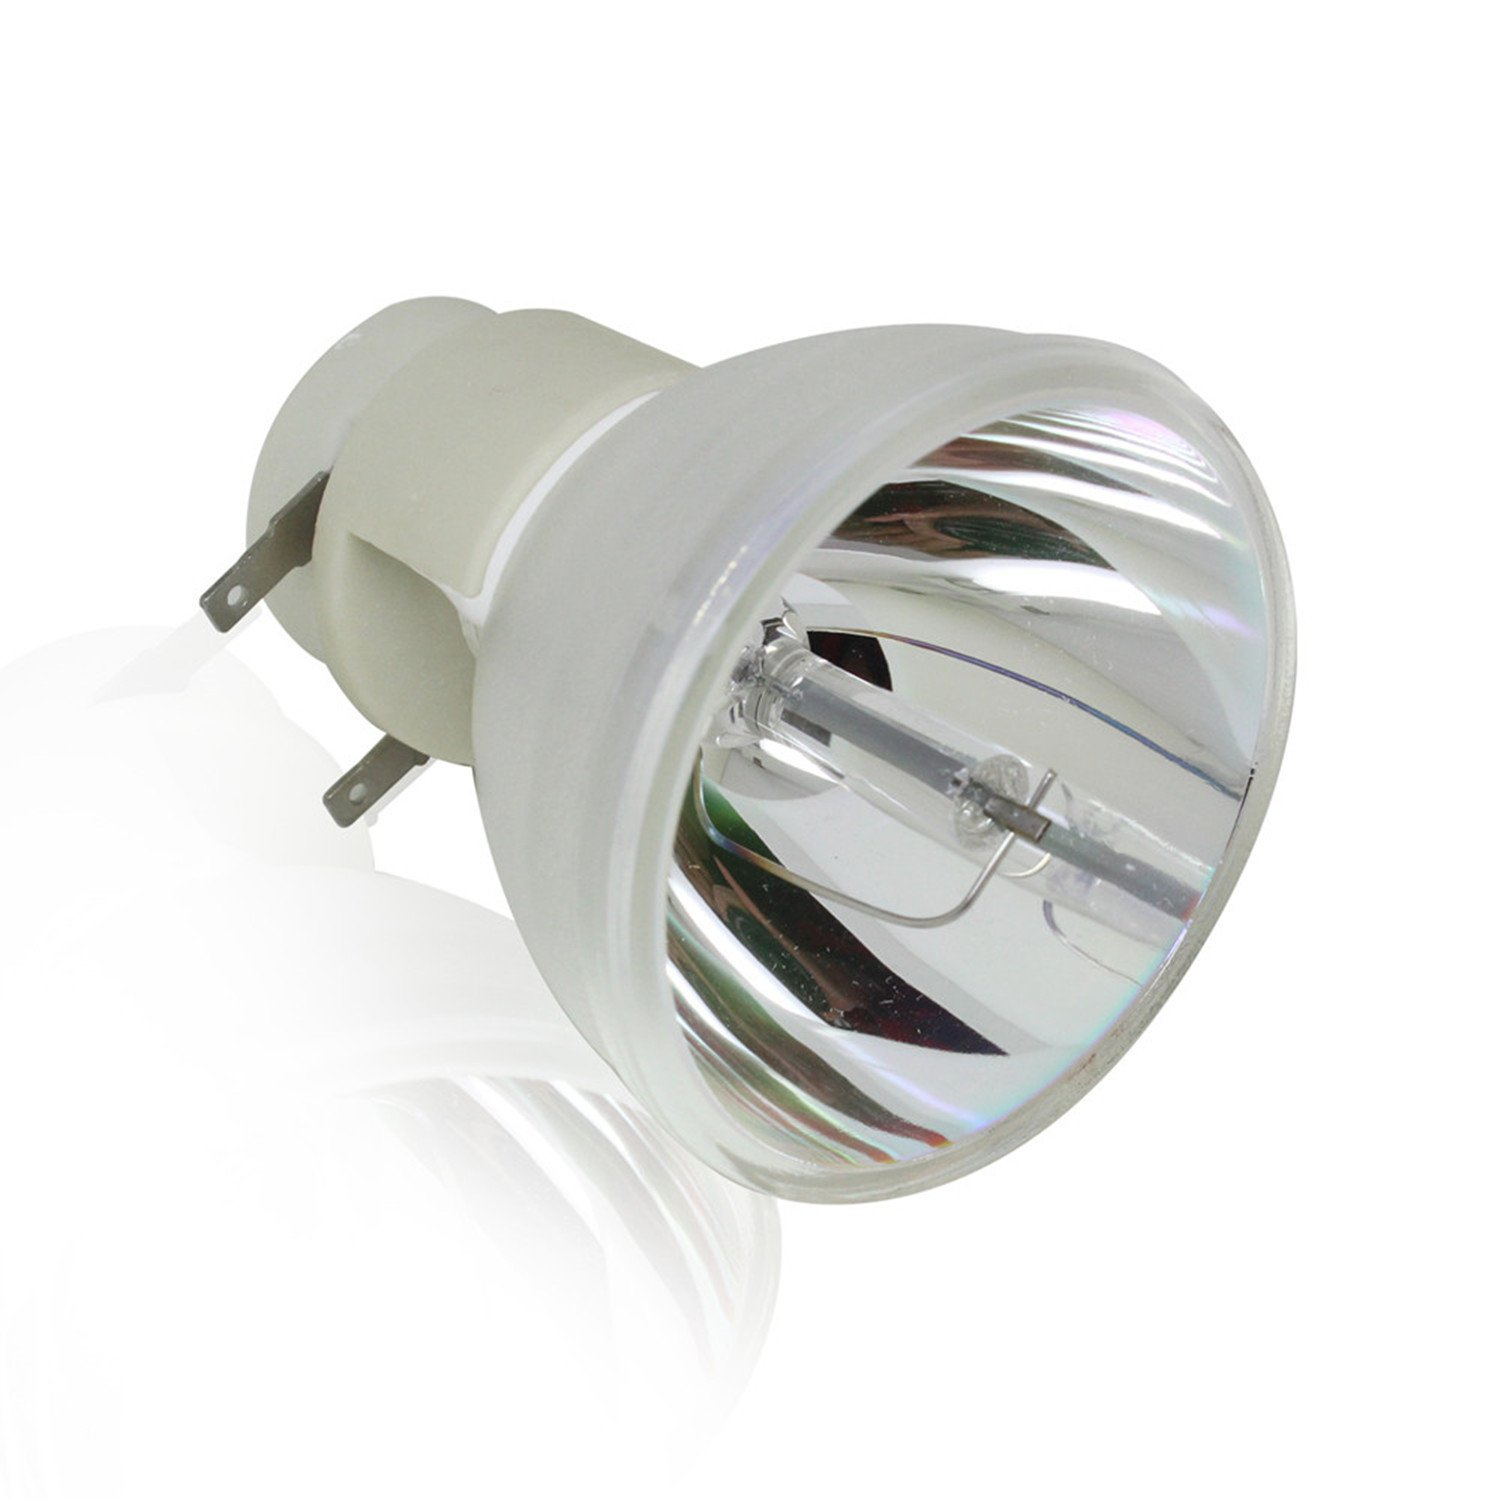 Projector Bulb P Vip 190 08 E208 For Viewsonic Epson Eb S300 Electronics